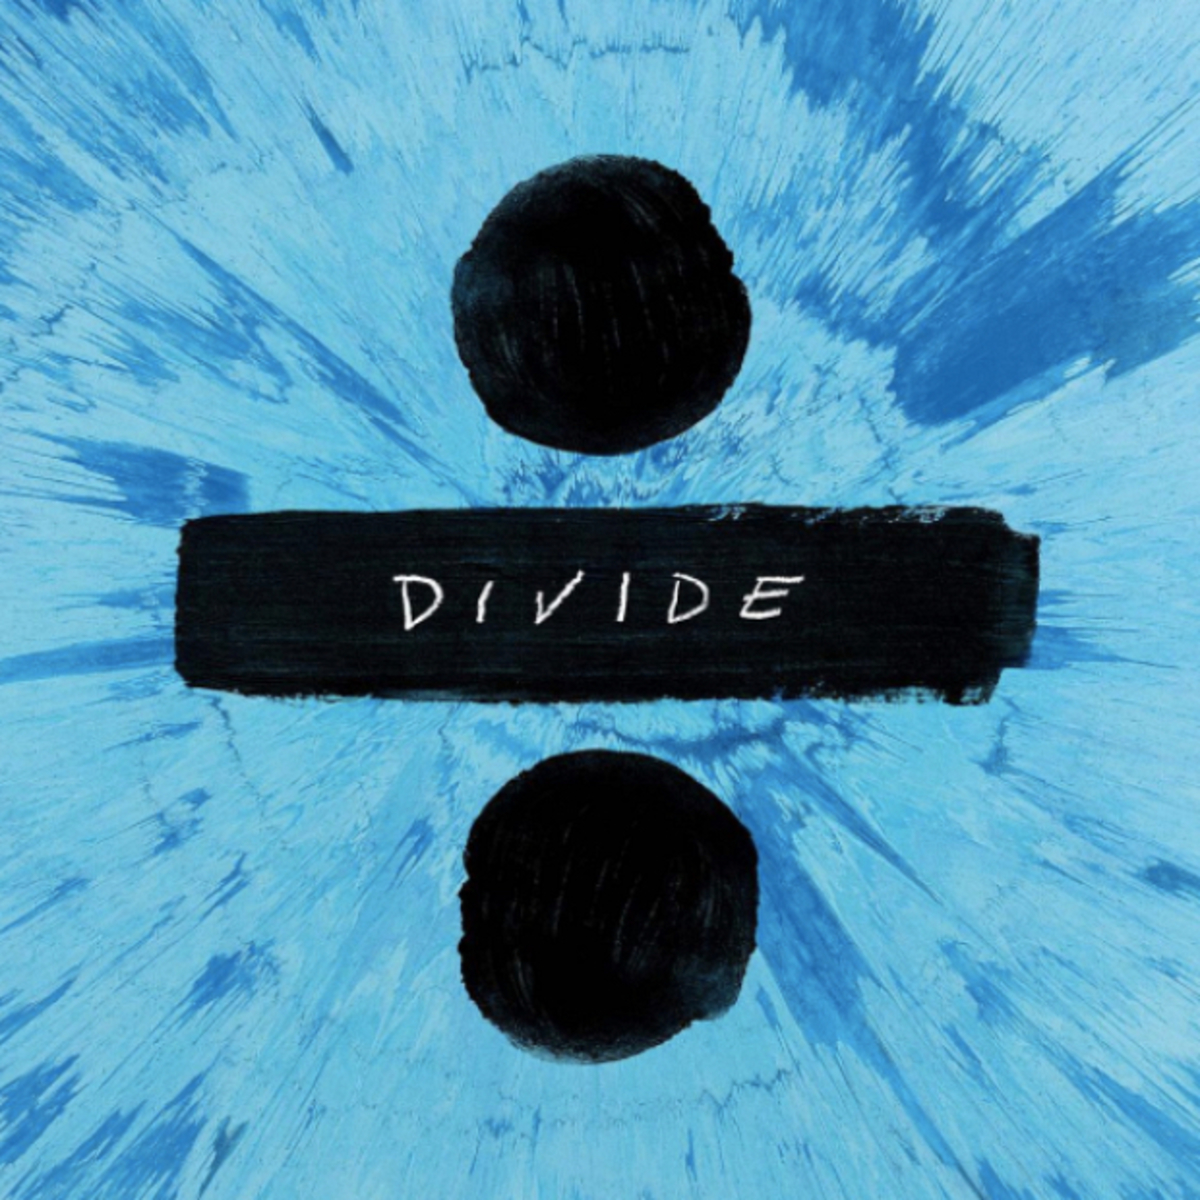 Articlehome ed sheeran divide album cover 2017 march 1484221917